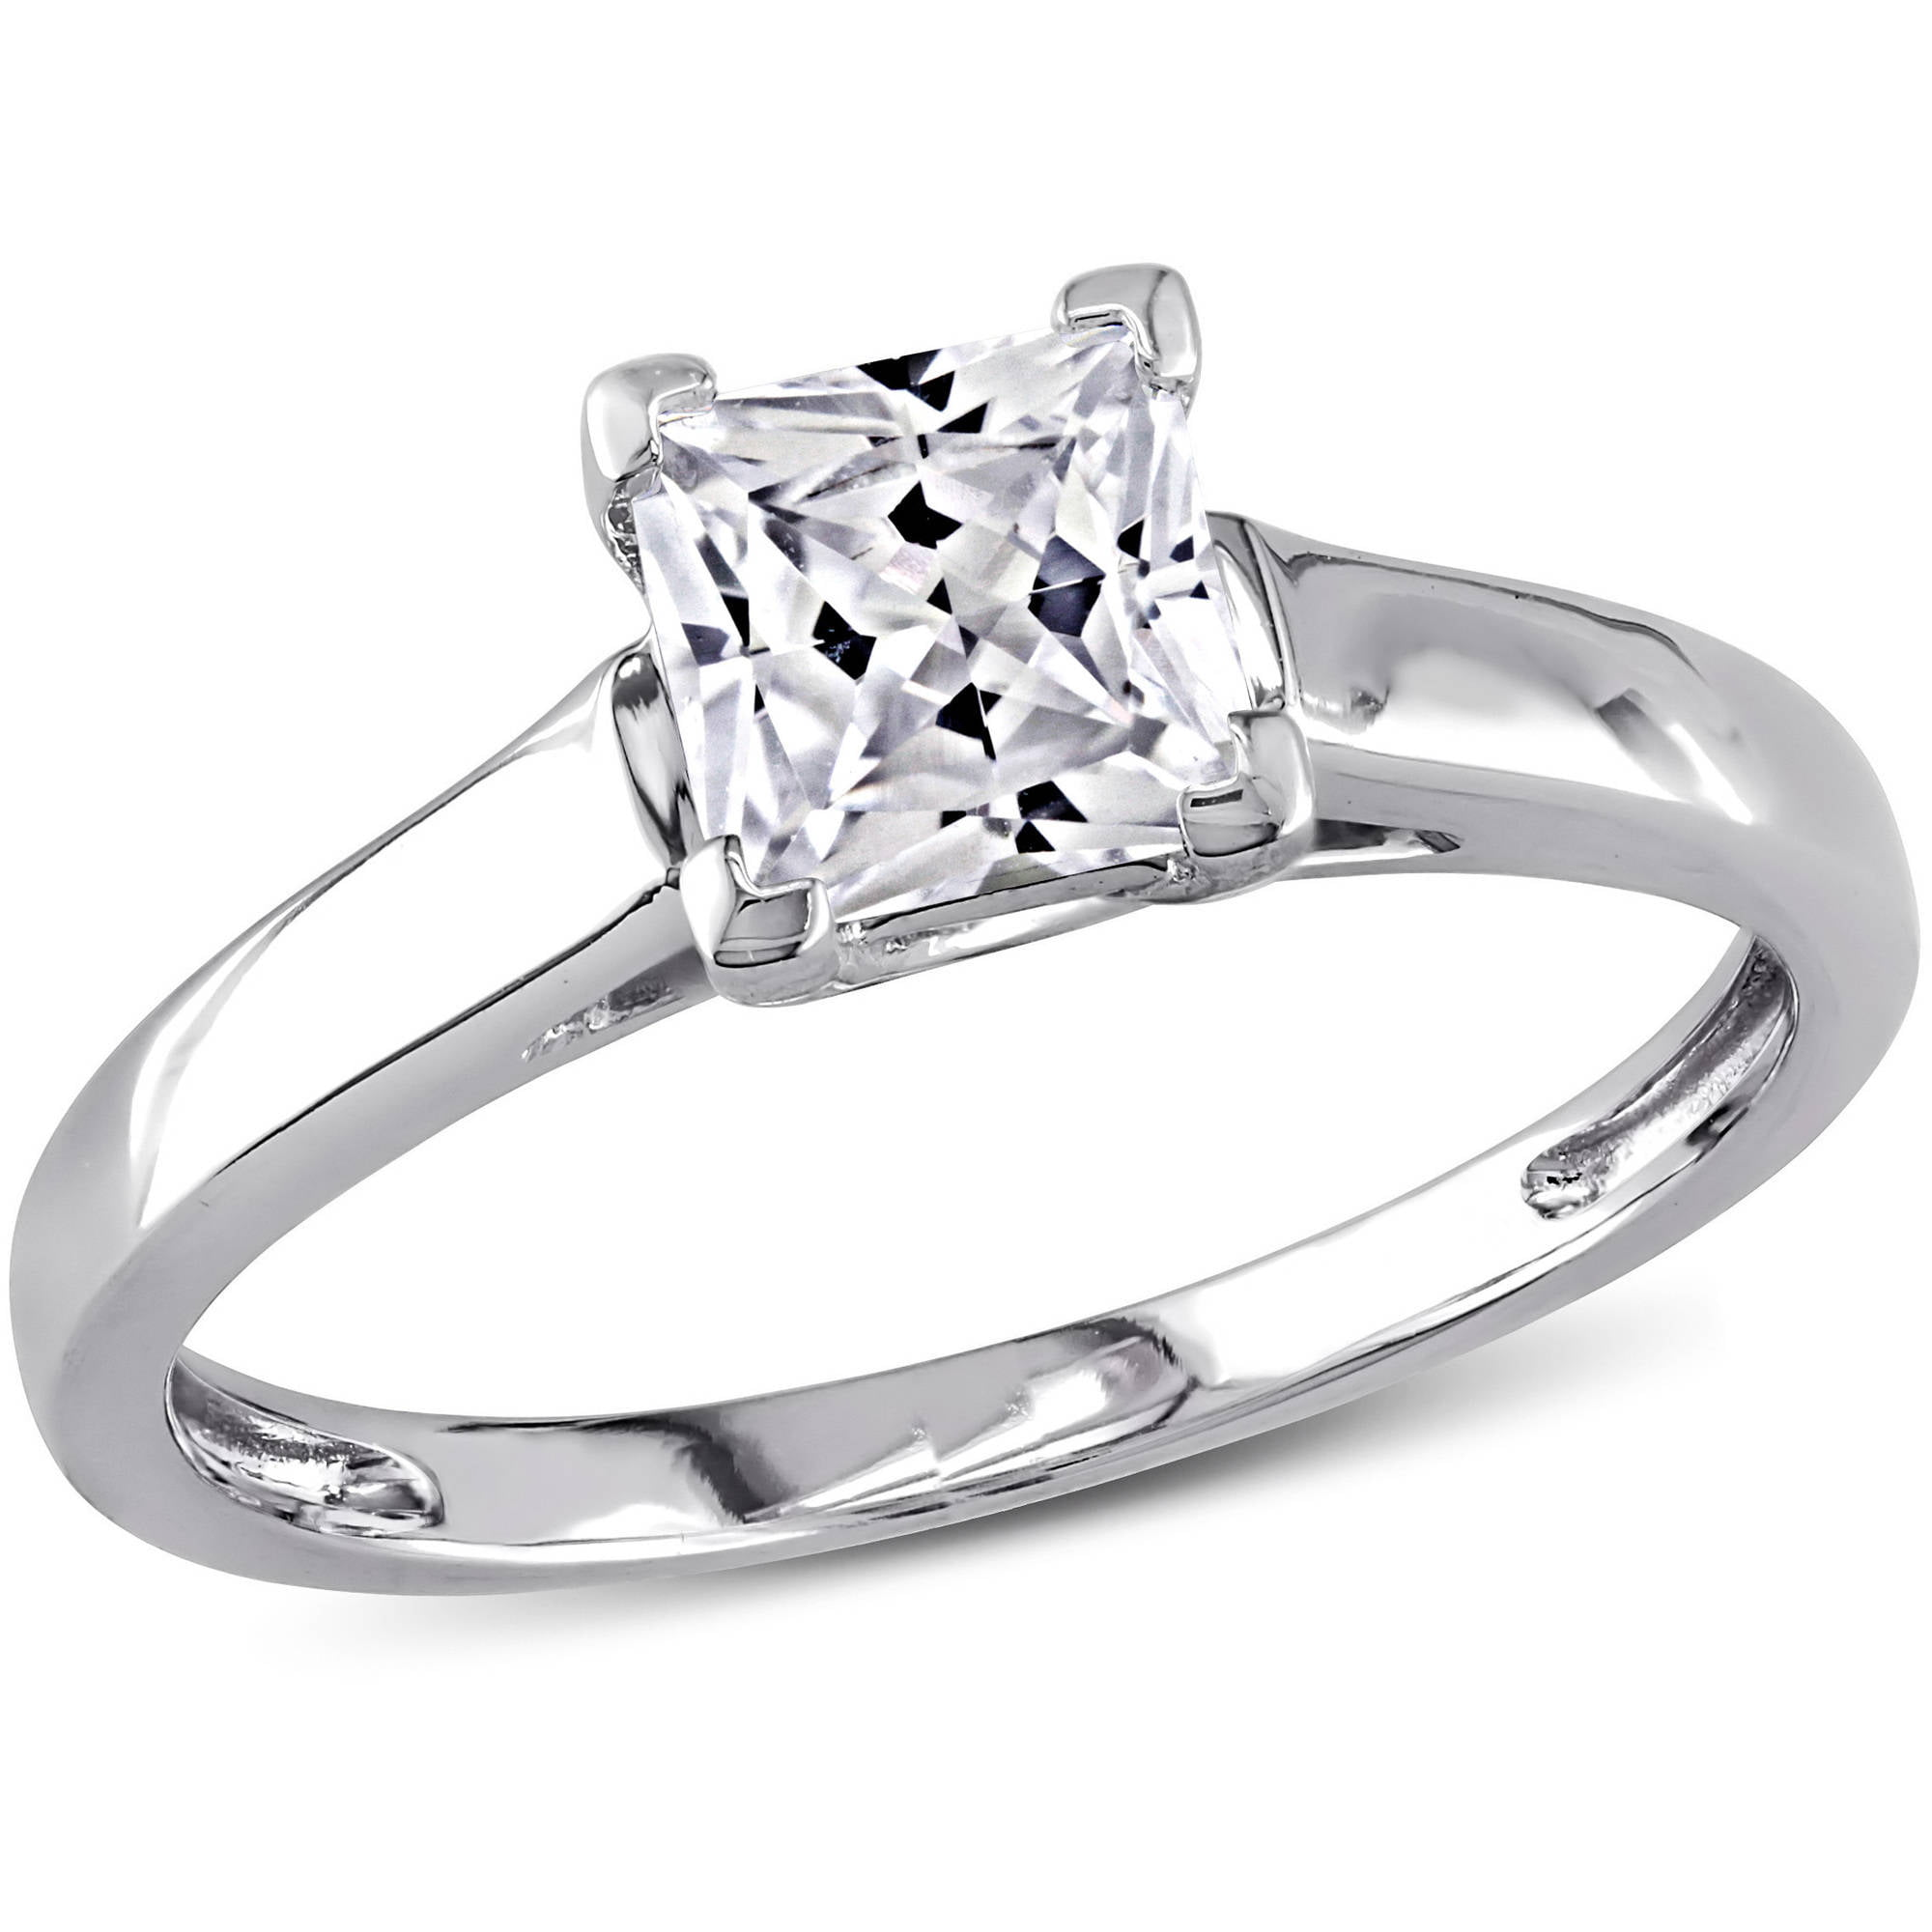 miabella 1 carat tgw princess cut created white sapphire 10kt white gold solitaire engagement ring walmartcom - Wedding Rings From Walmart